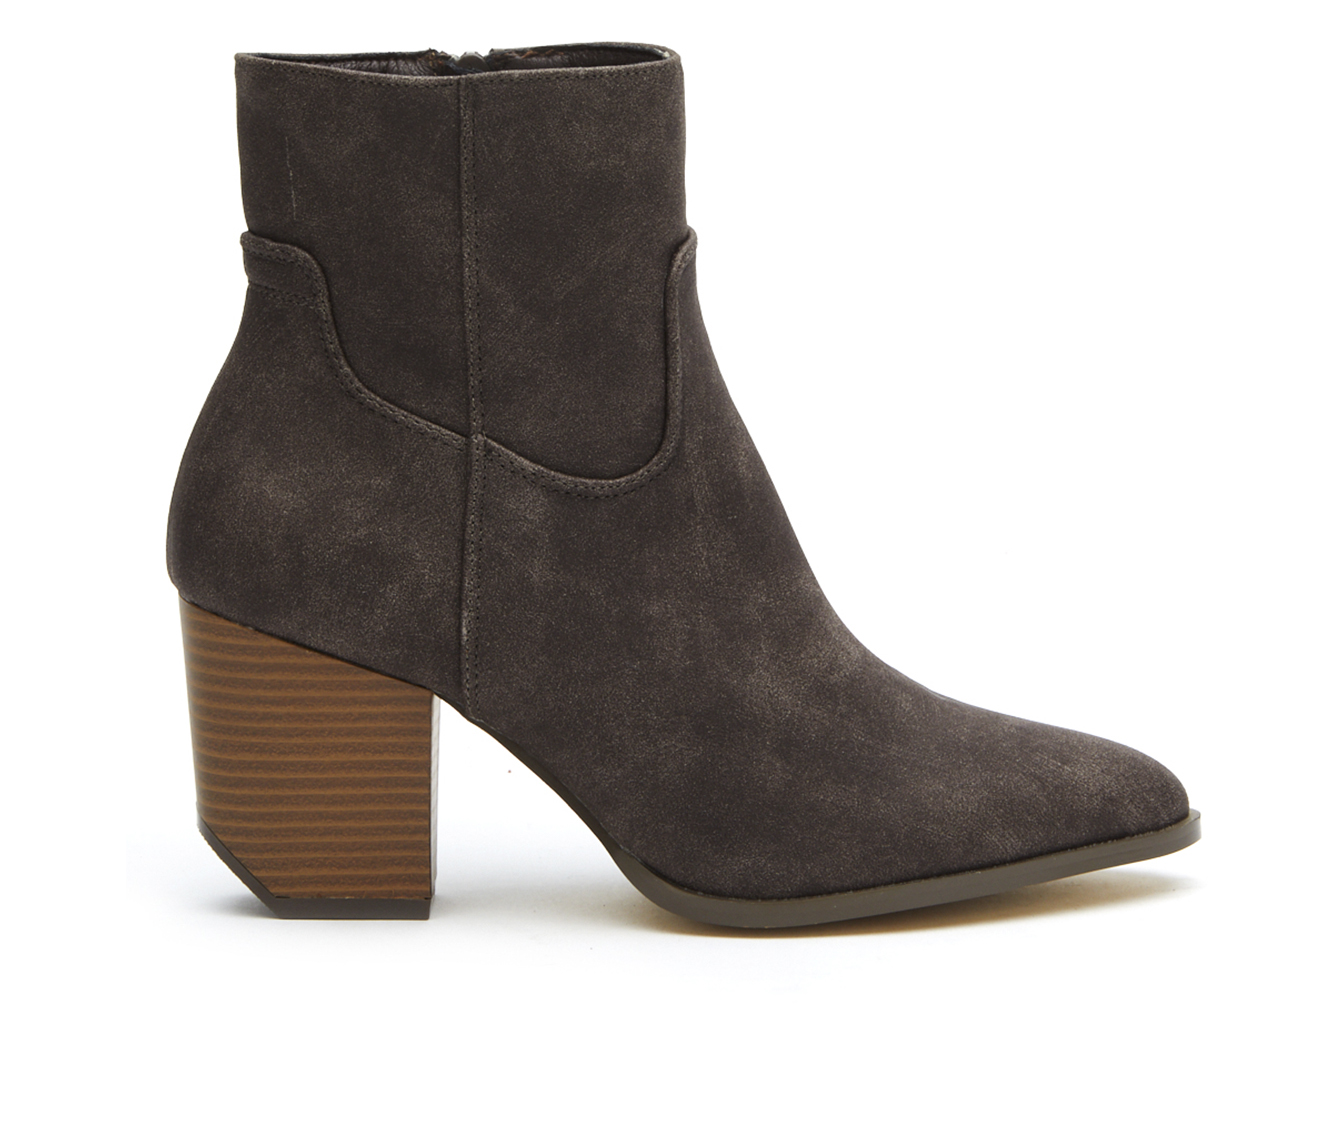 Coconuts Amie Women's Boots (Brown - Faux Leather)